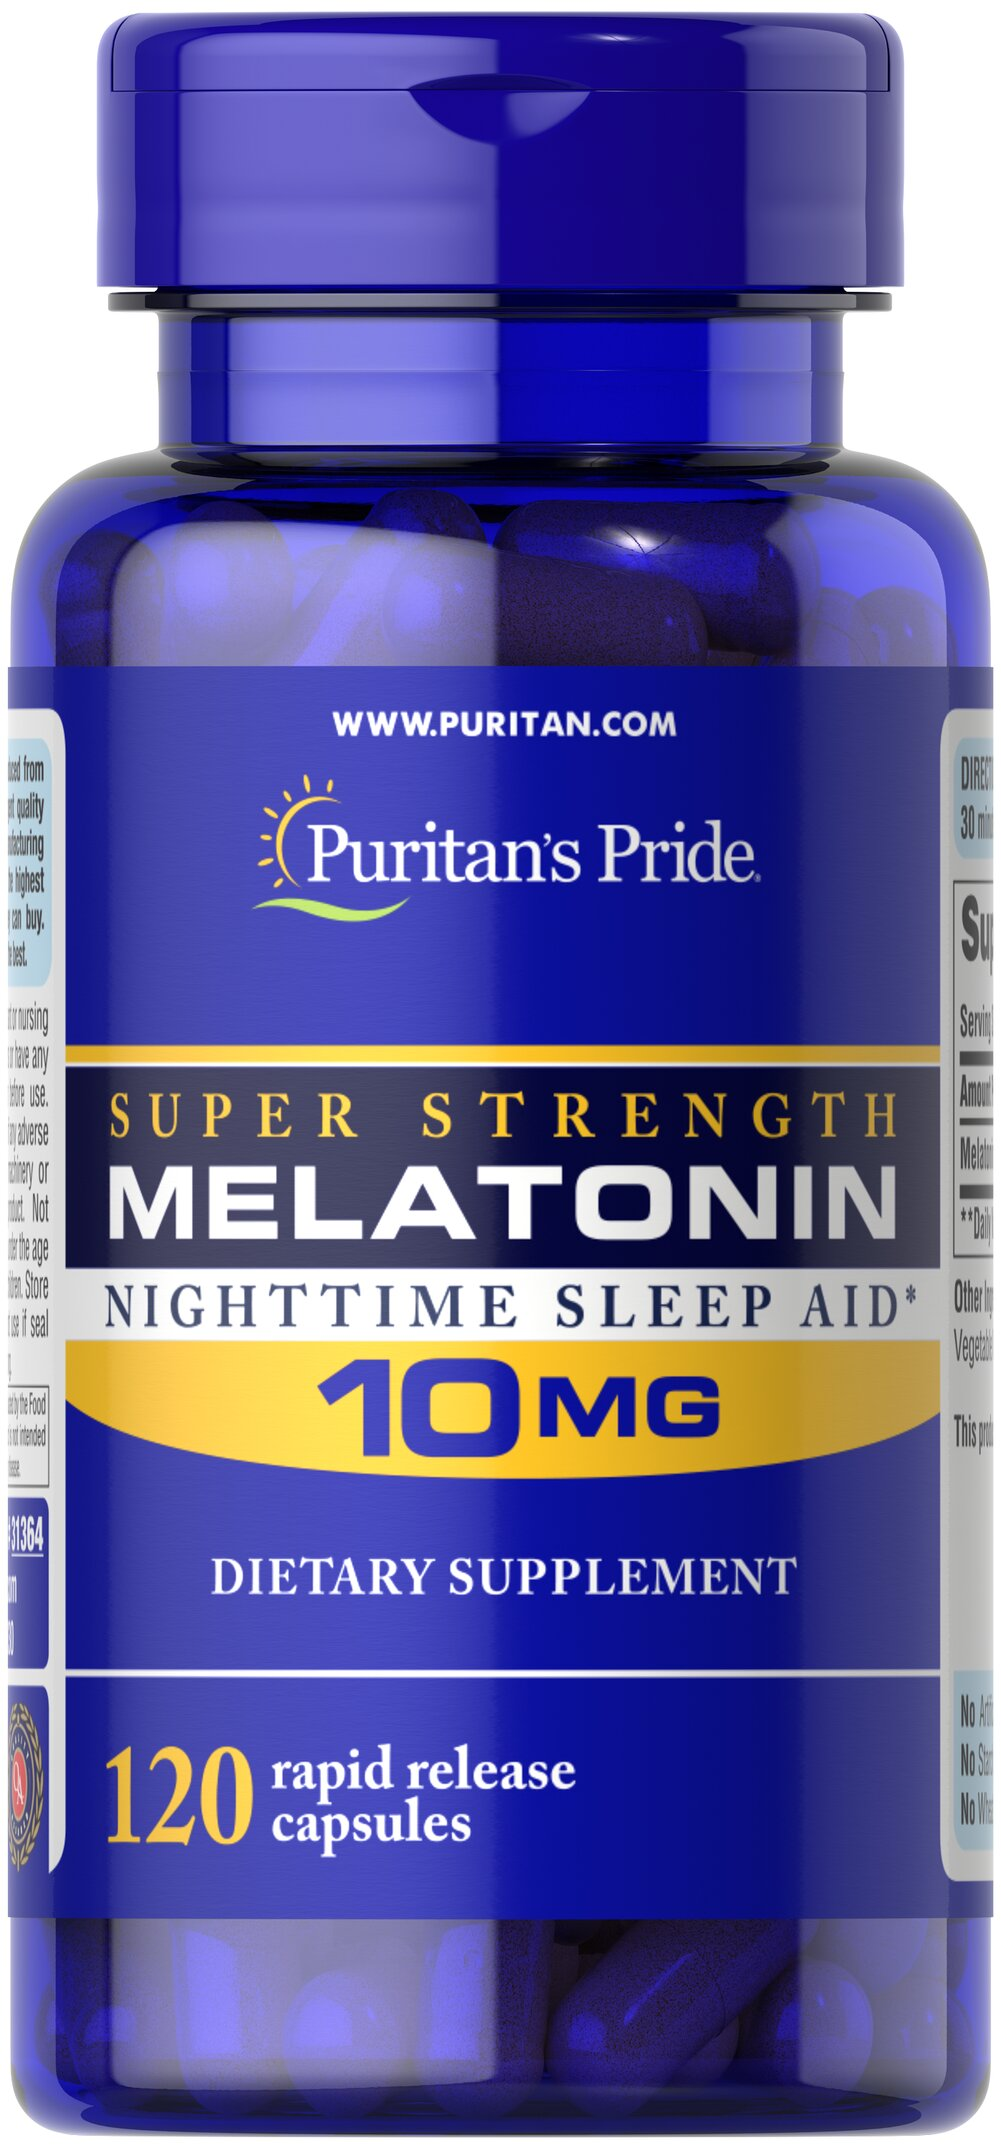 Melatonin 10 mg <p>Sometimes it's hard to unwind after a long day. That's when it's time for Melatonin, a hormone naturally produced in the body that is closely involved in the natural sleep cycle.** It's a terrific choice if you experience occasional sleeplessness or jet lag, or if you want to improve your quality of rest.**</p> 120 Capsules 10 mg $7.59